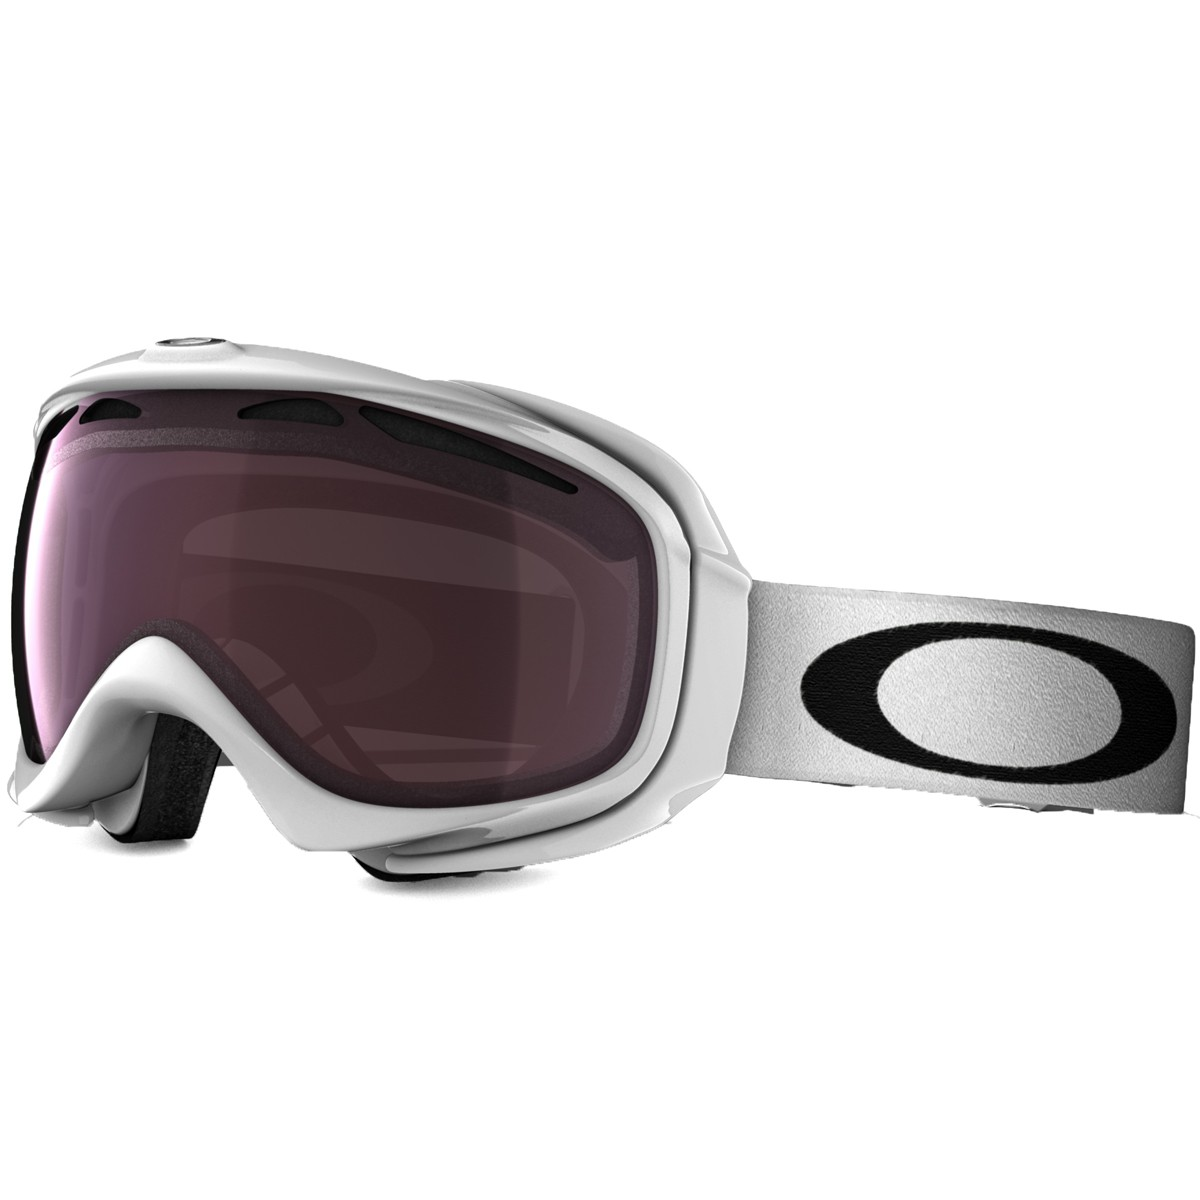 Oakley Elevate Snowboard Goggles 2015 - Polished White - Prizm Rose